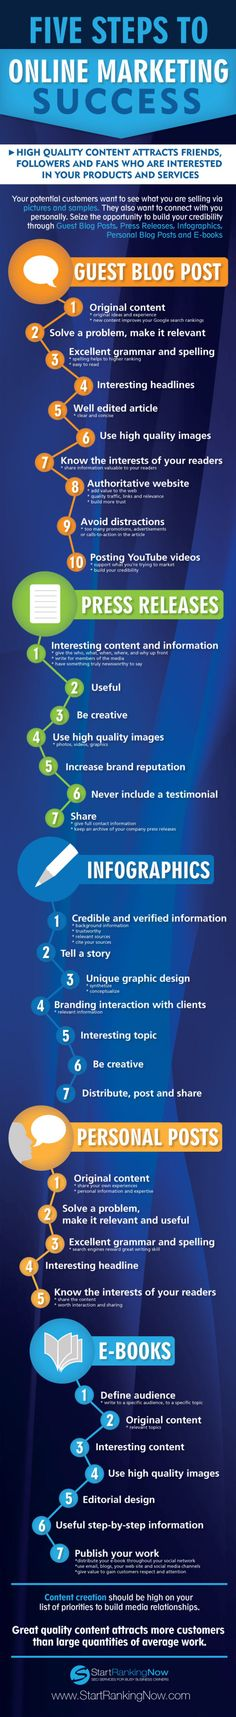 Online Marketing Success: 5 Step Guide – Infographic